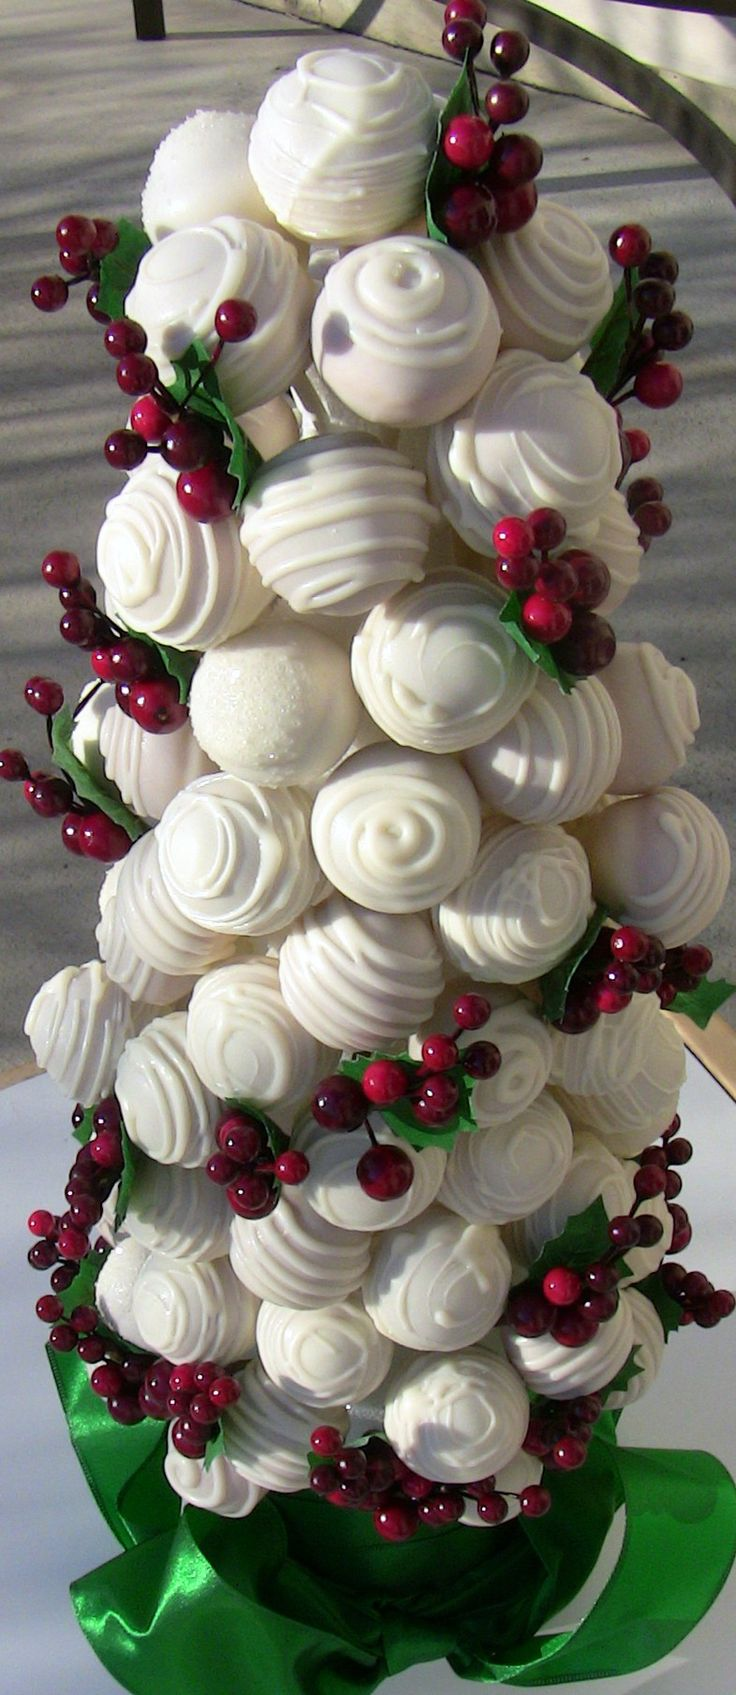 How to make christmas cake - Christmas Cake Pop Tree